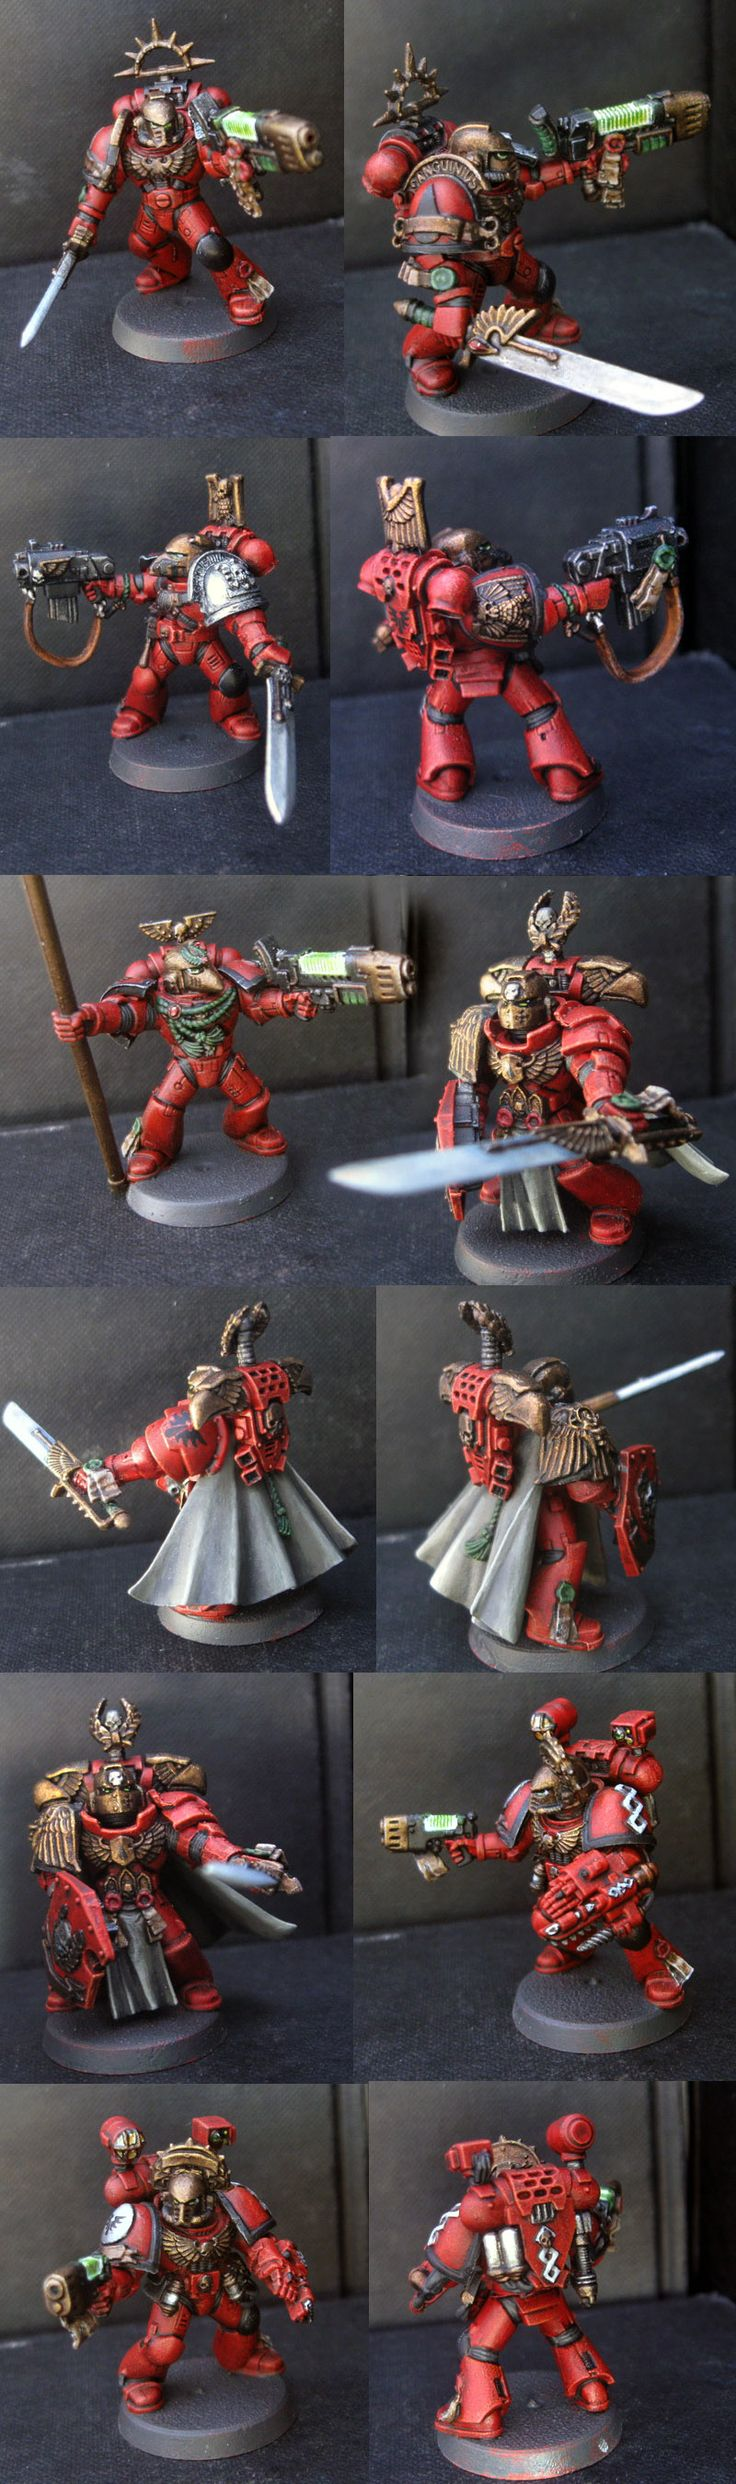 Join the best Warhammer 40k, Warhammer Fantasy, Wargames and Miniatures forum. Discover news, rumors, reviews, battle reports, galleries, and more.